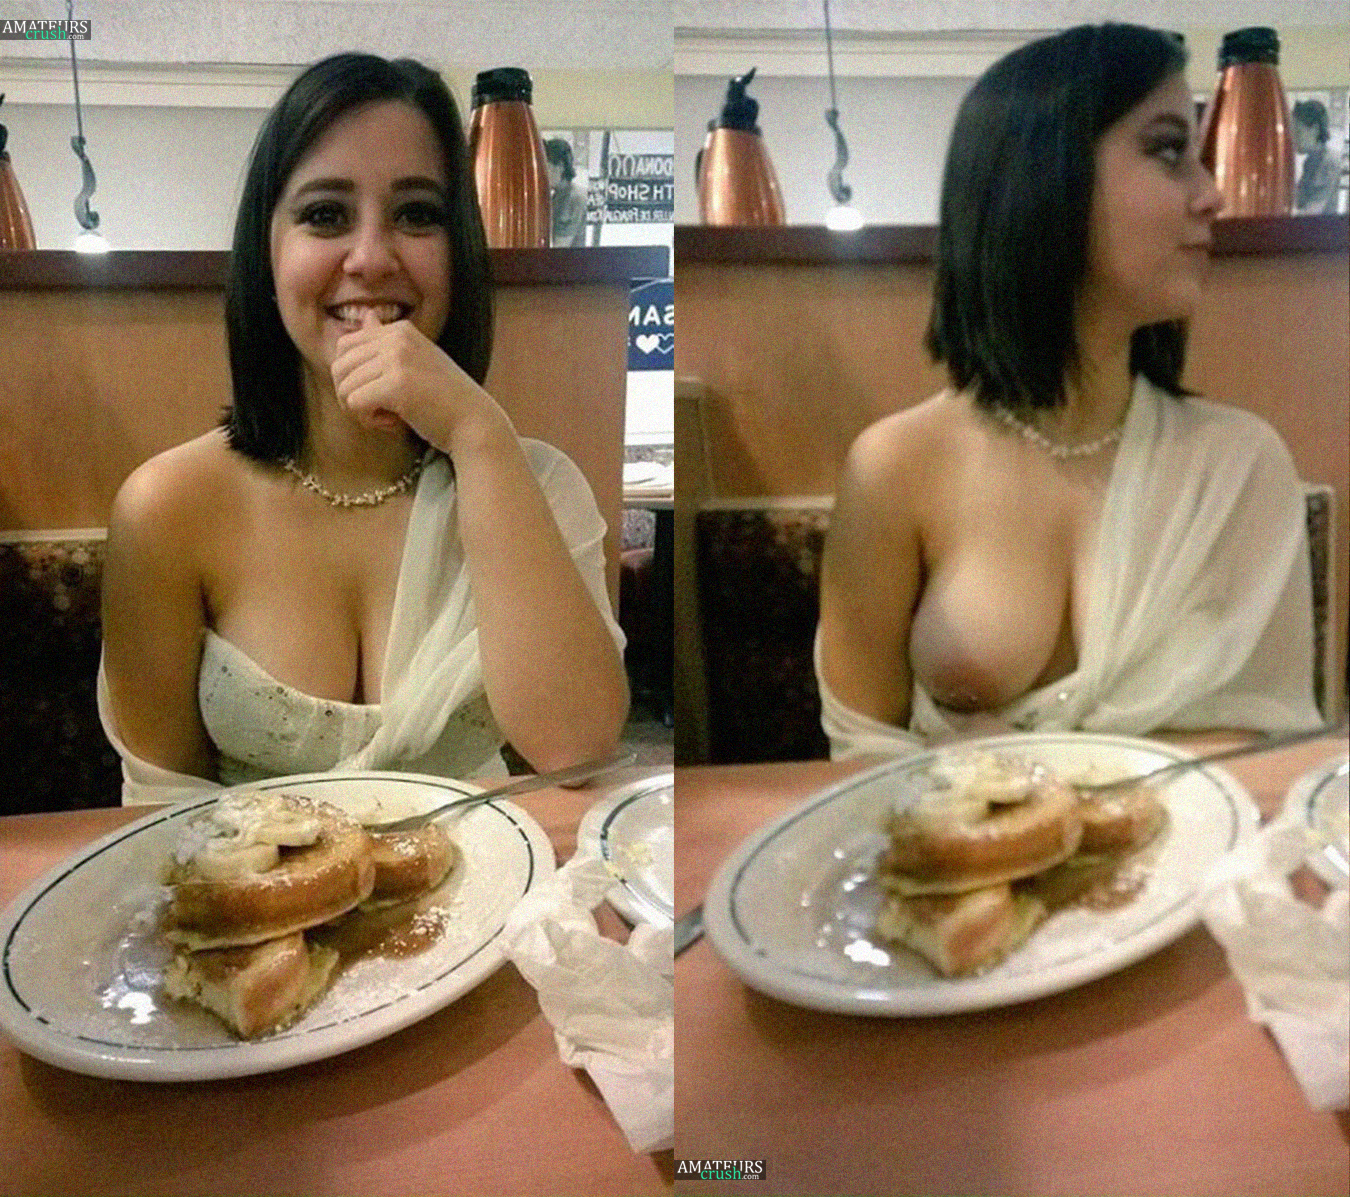 Boob flashes in public